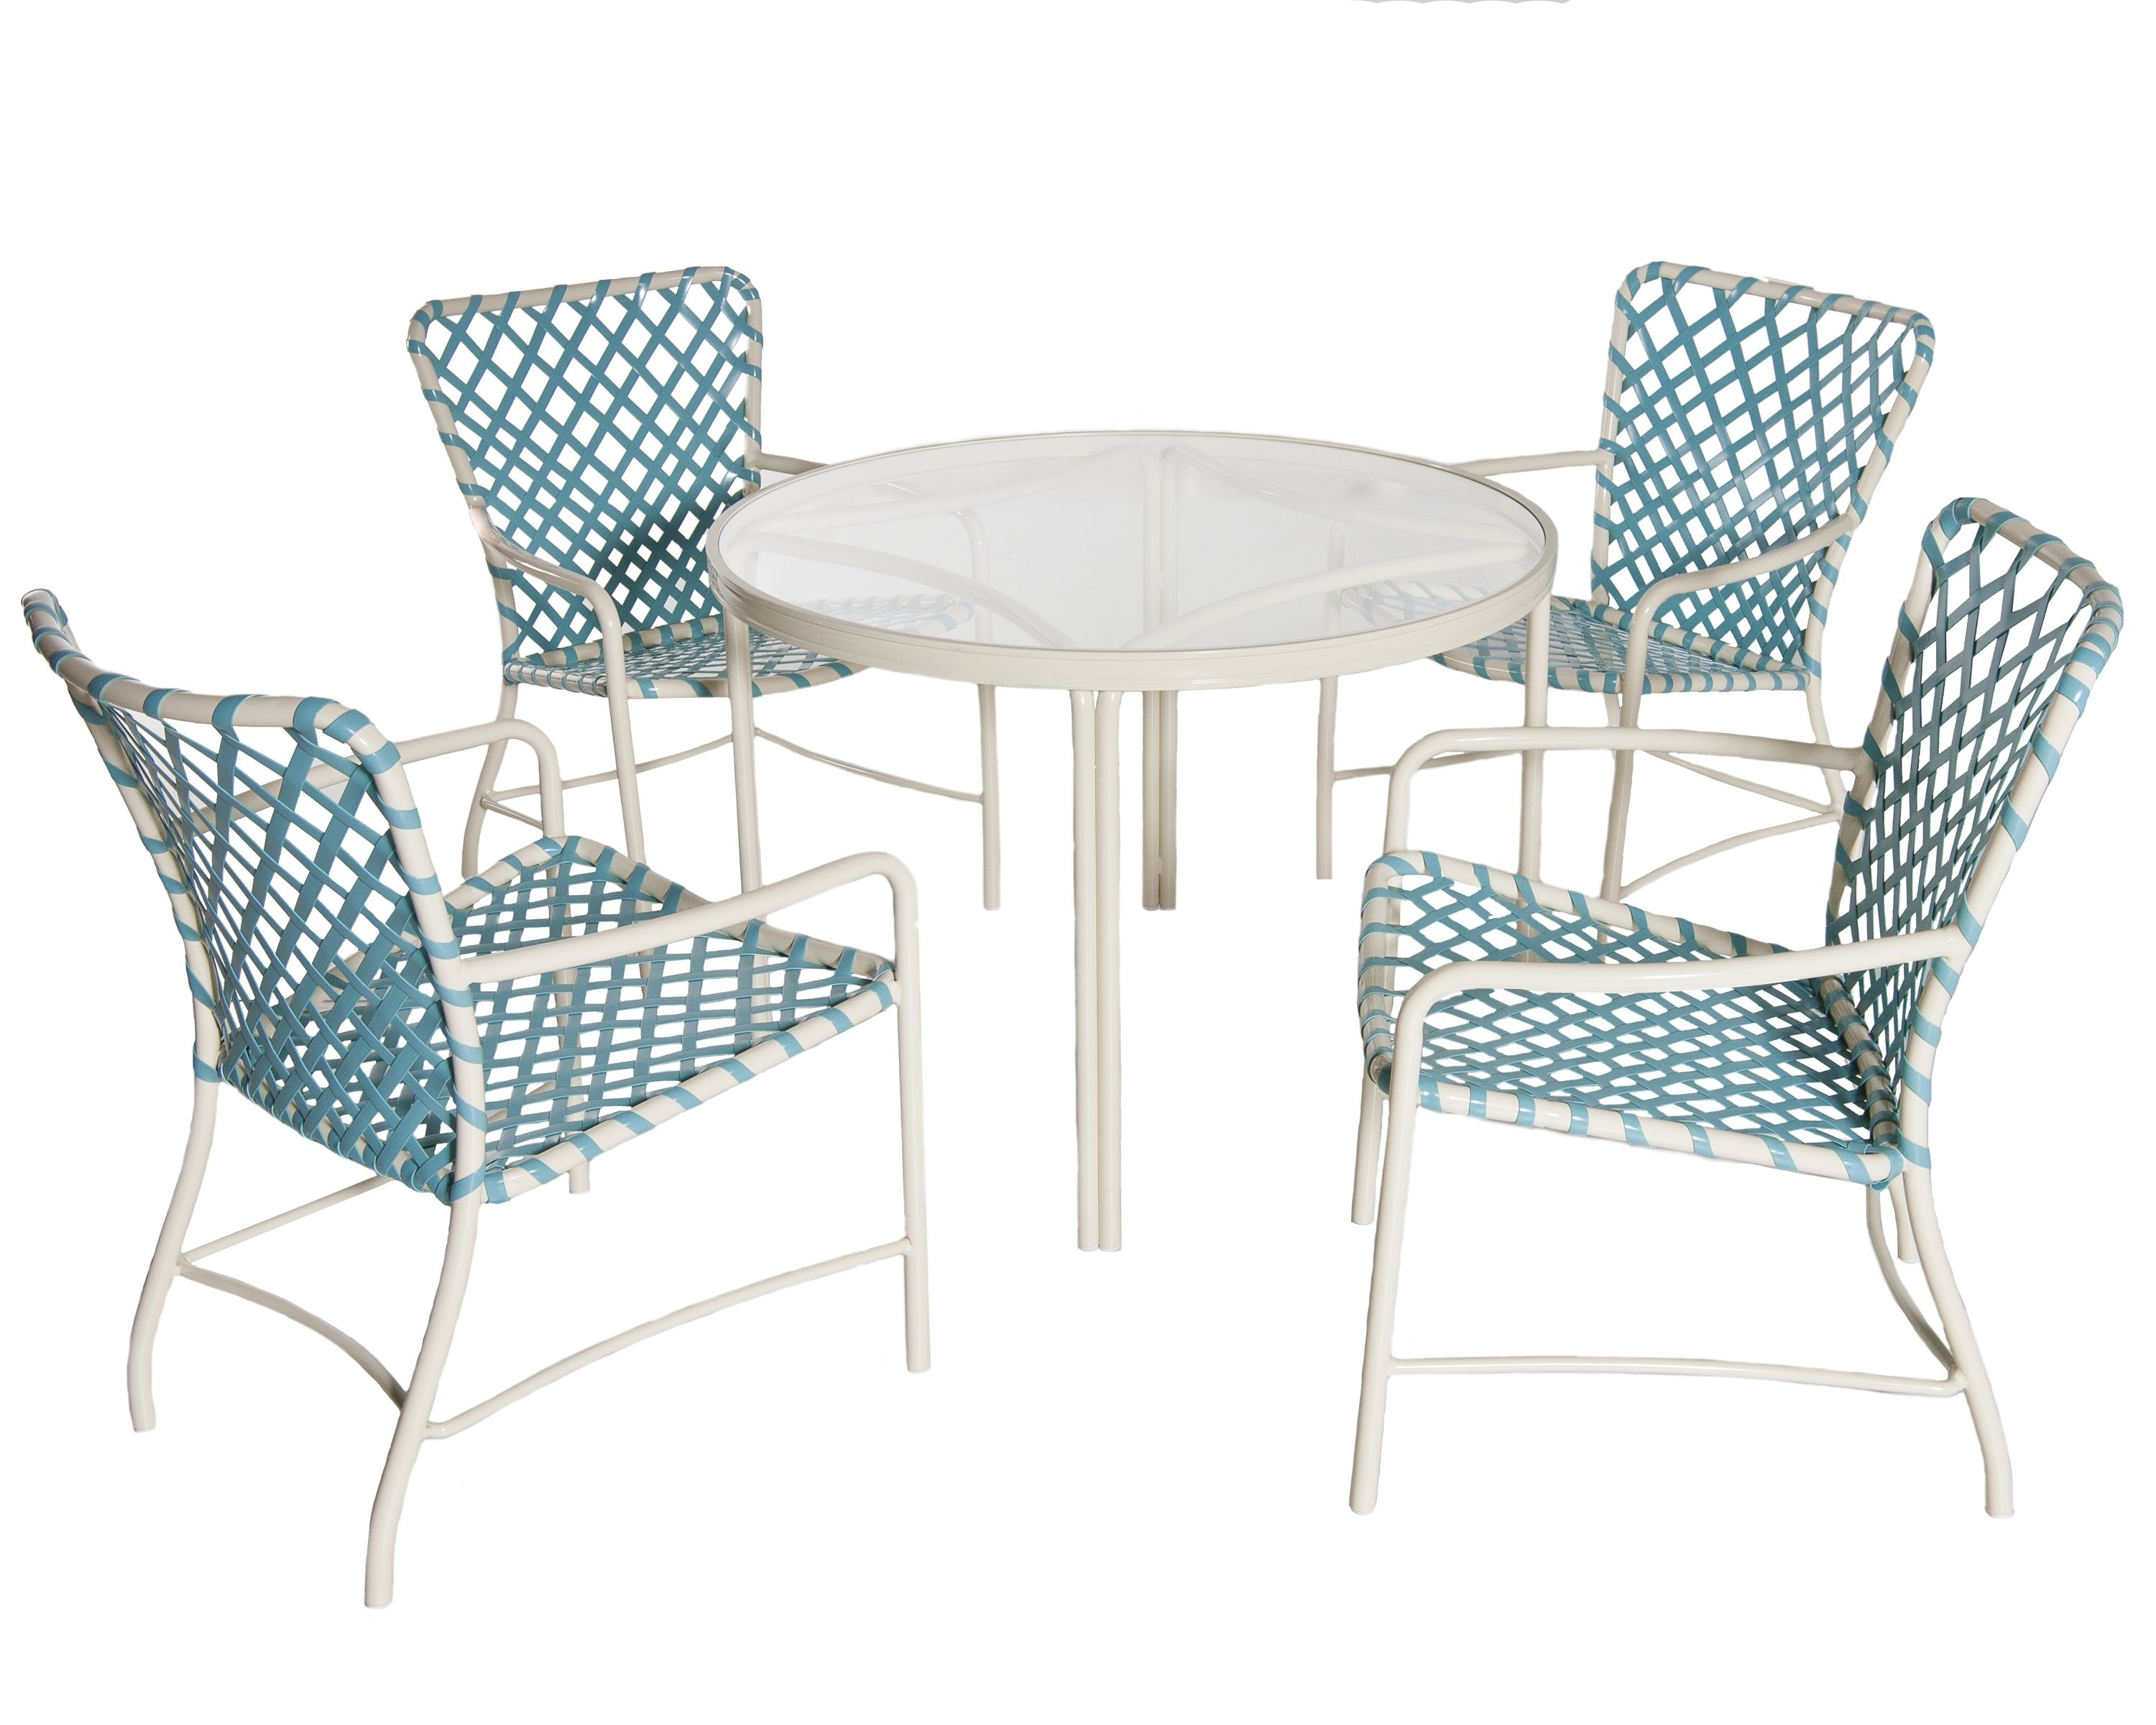 1960S Iconic Outdoor Furniture Tubular Aluminum With Vinyl Within Preferred Brown Jordan Chaises (View 1 of 15)